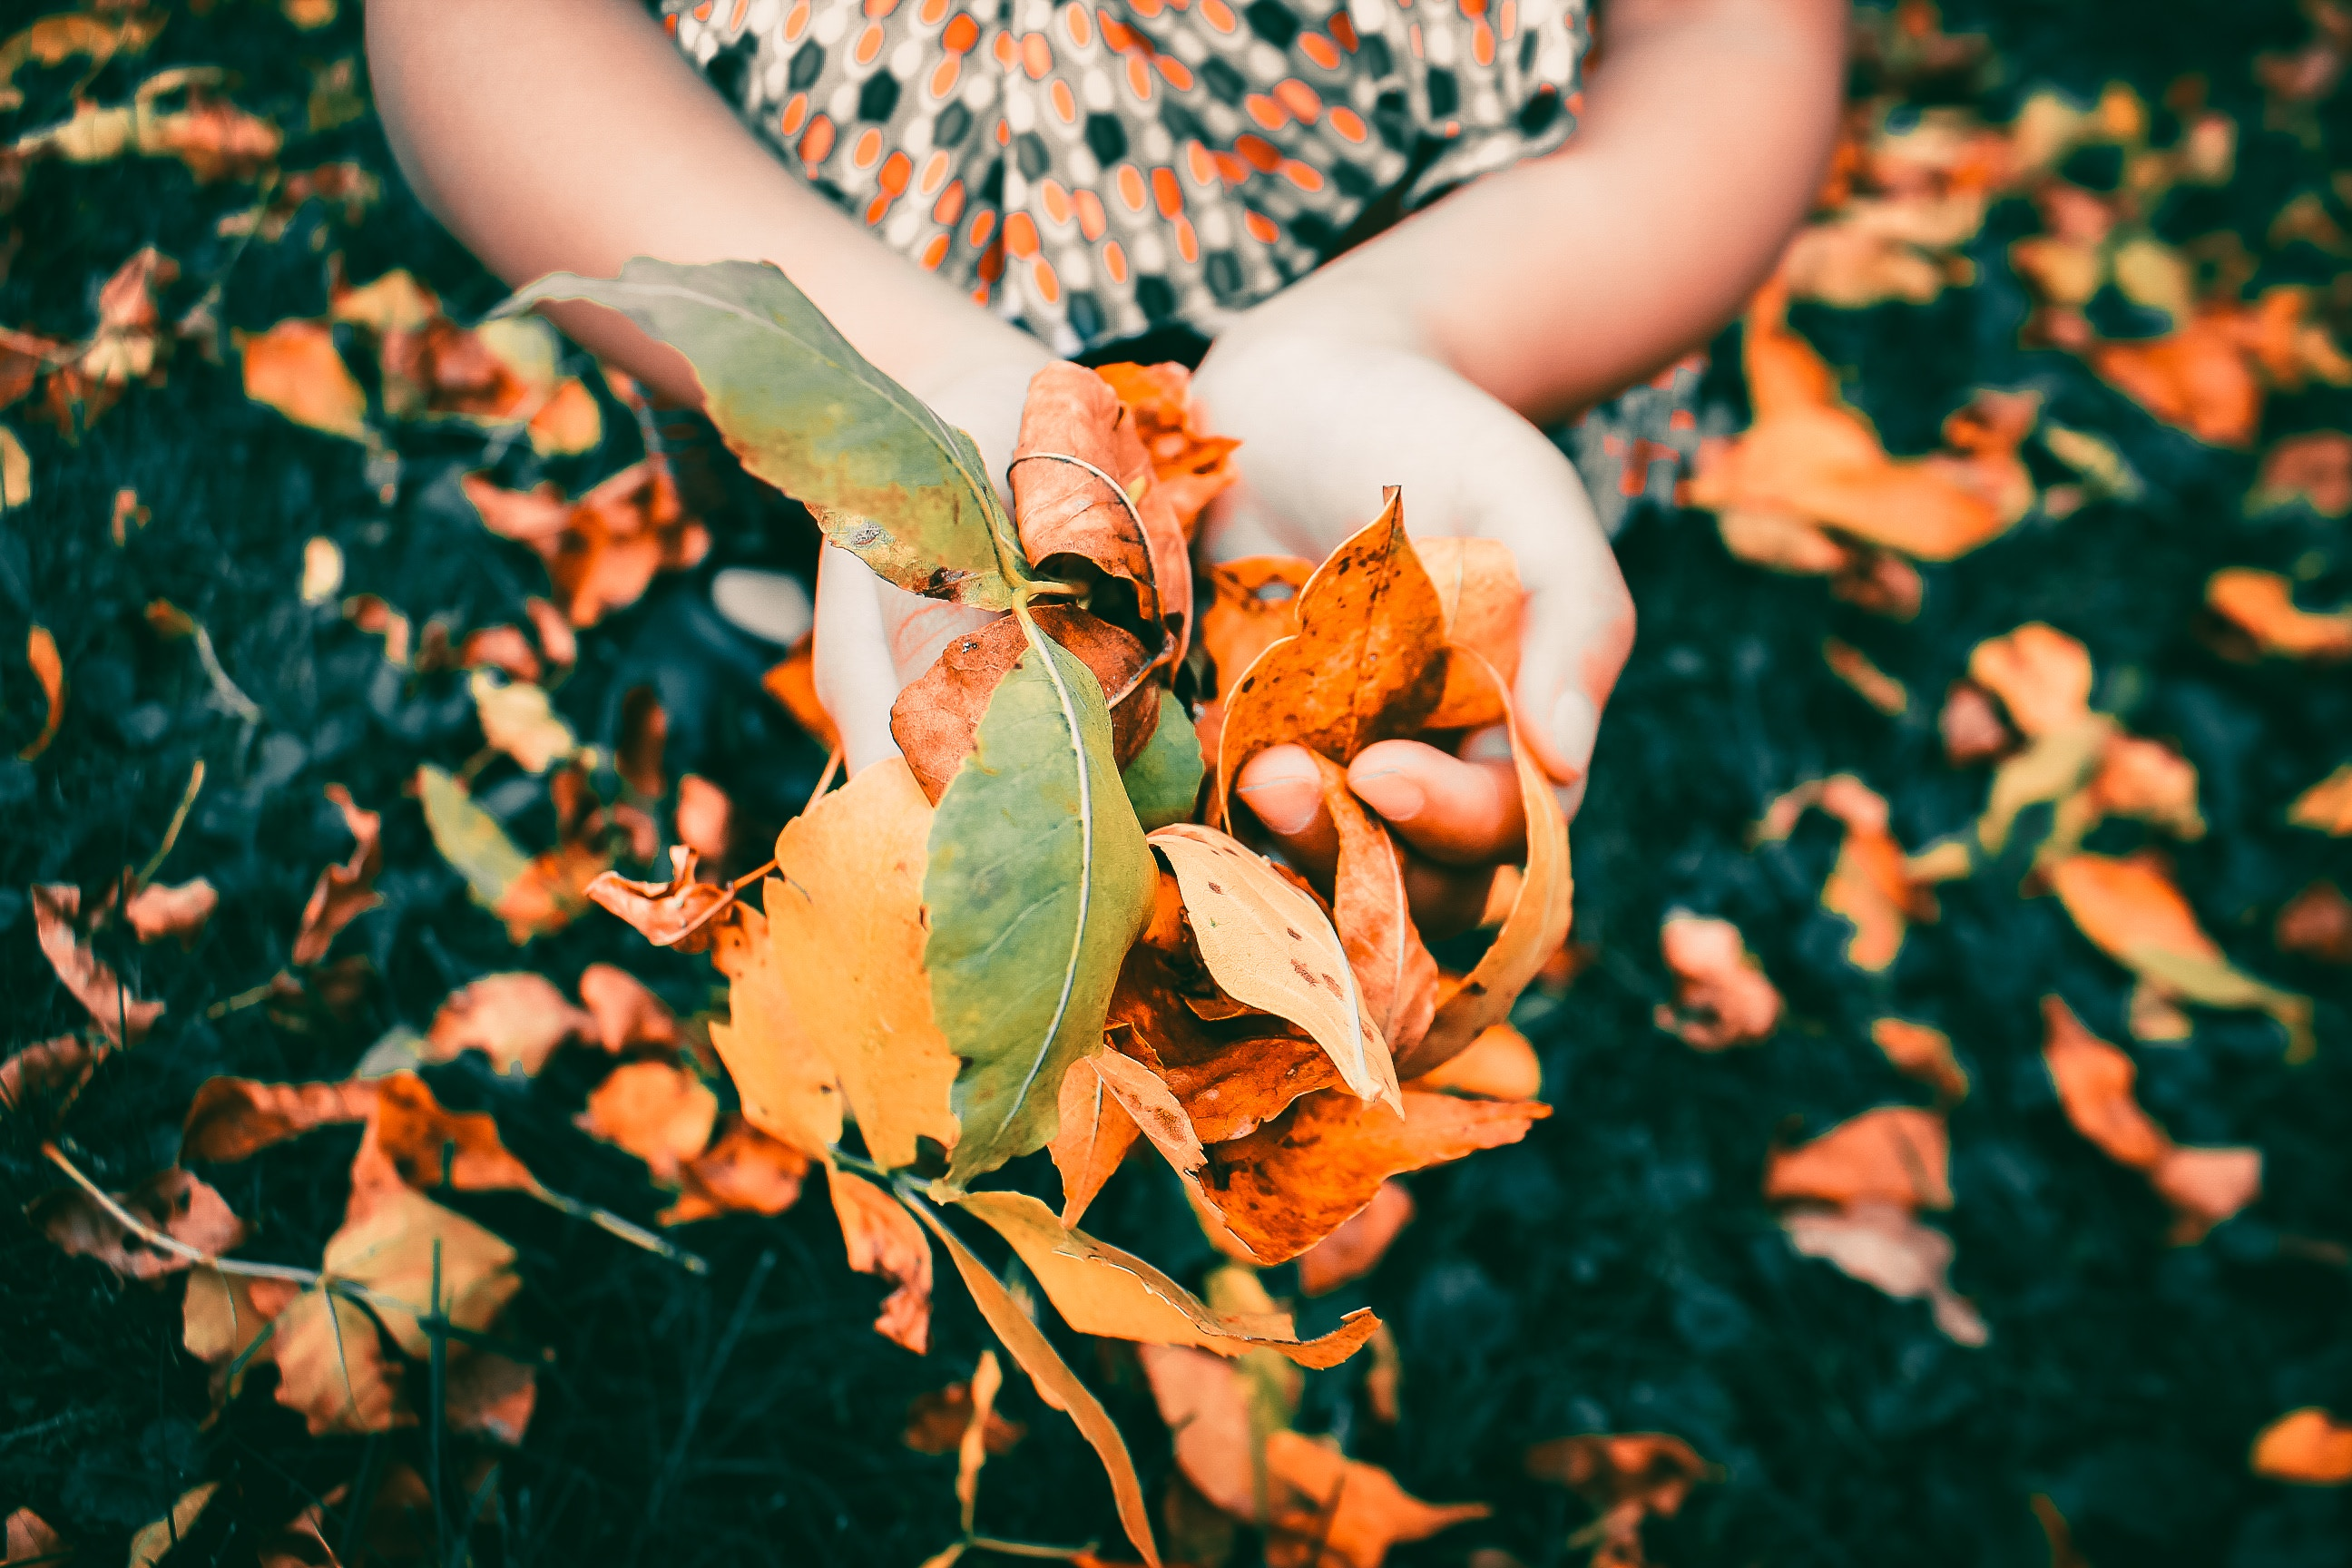 With Mother Nature giving us optimal growing conditions right now, fall is the ideal time to reseed your lawn.